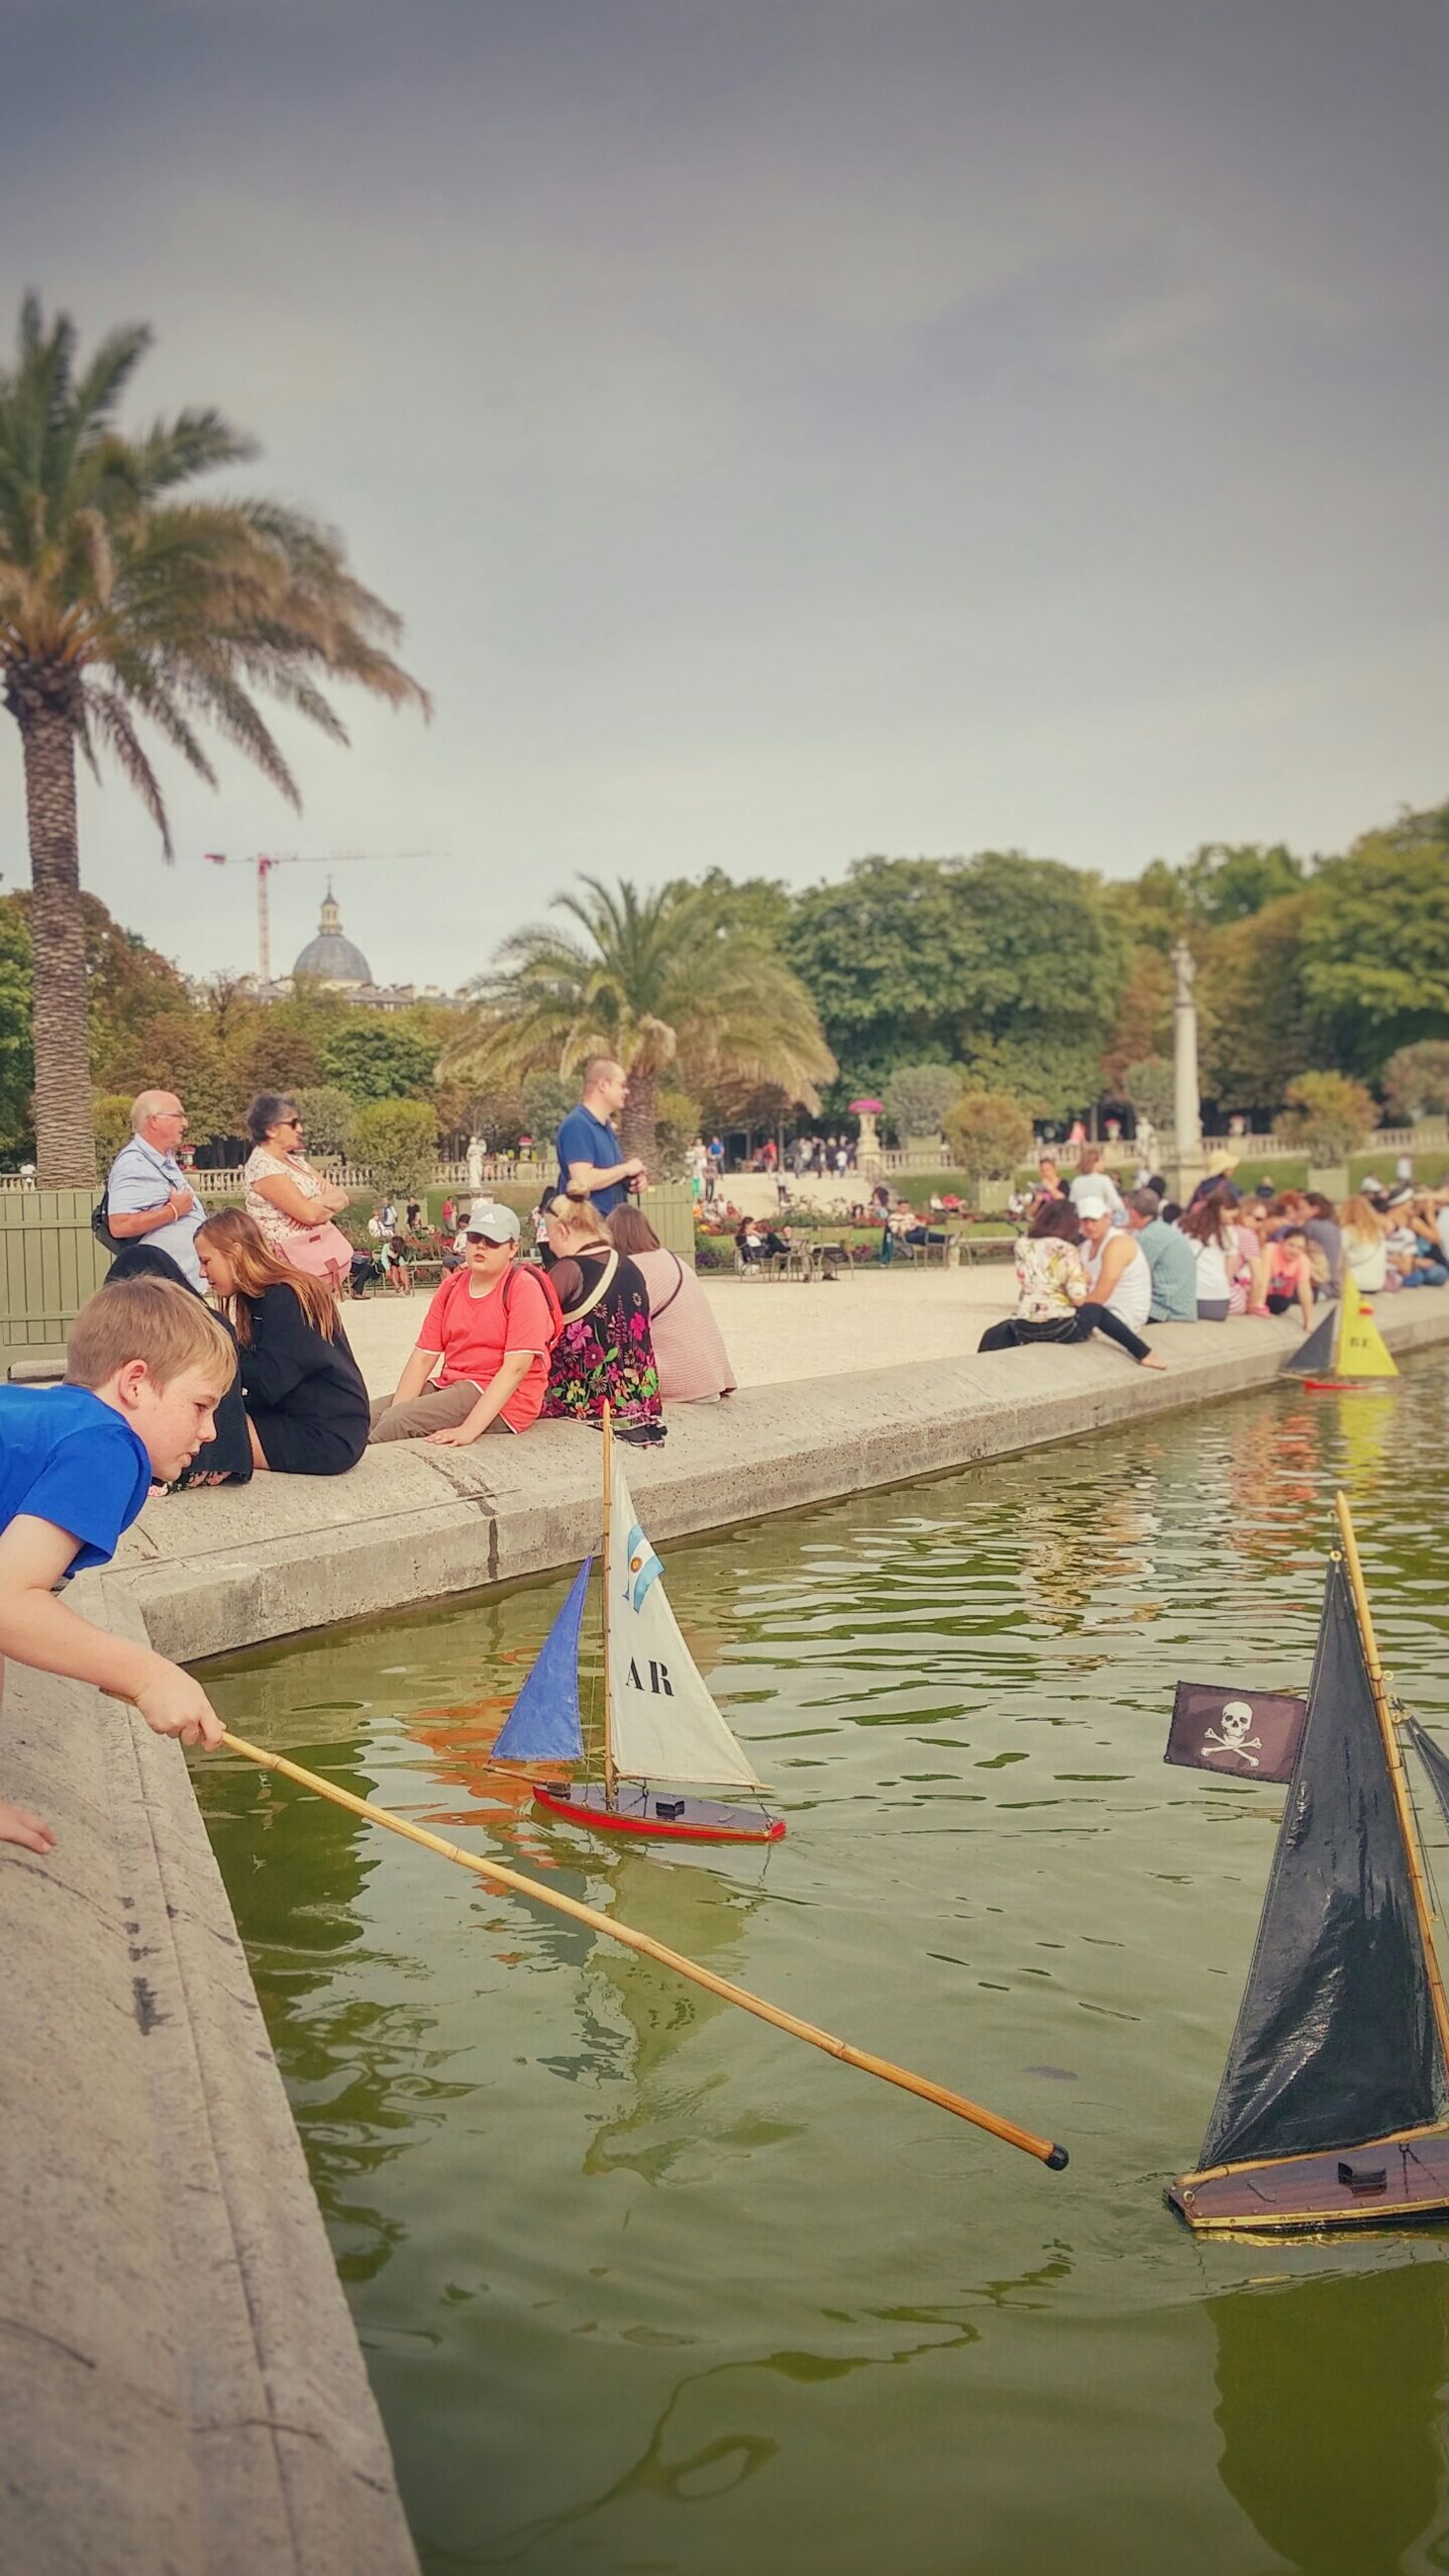 water, lifestyles, leisure activity, men, beach, person, sea, tree, nautical vessel, large group of people, vacations, palm tree, boat, tourist, sky, transportation, relaxation, tourism, shore